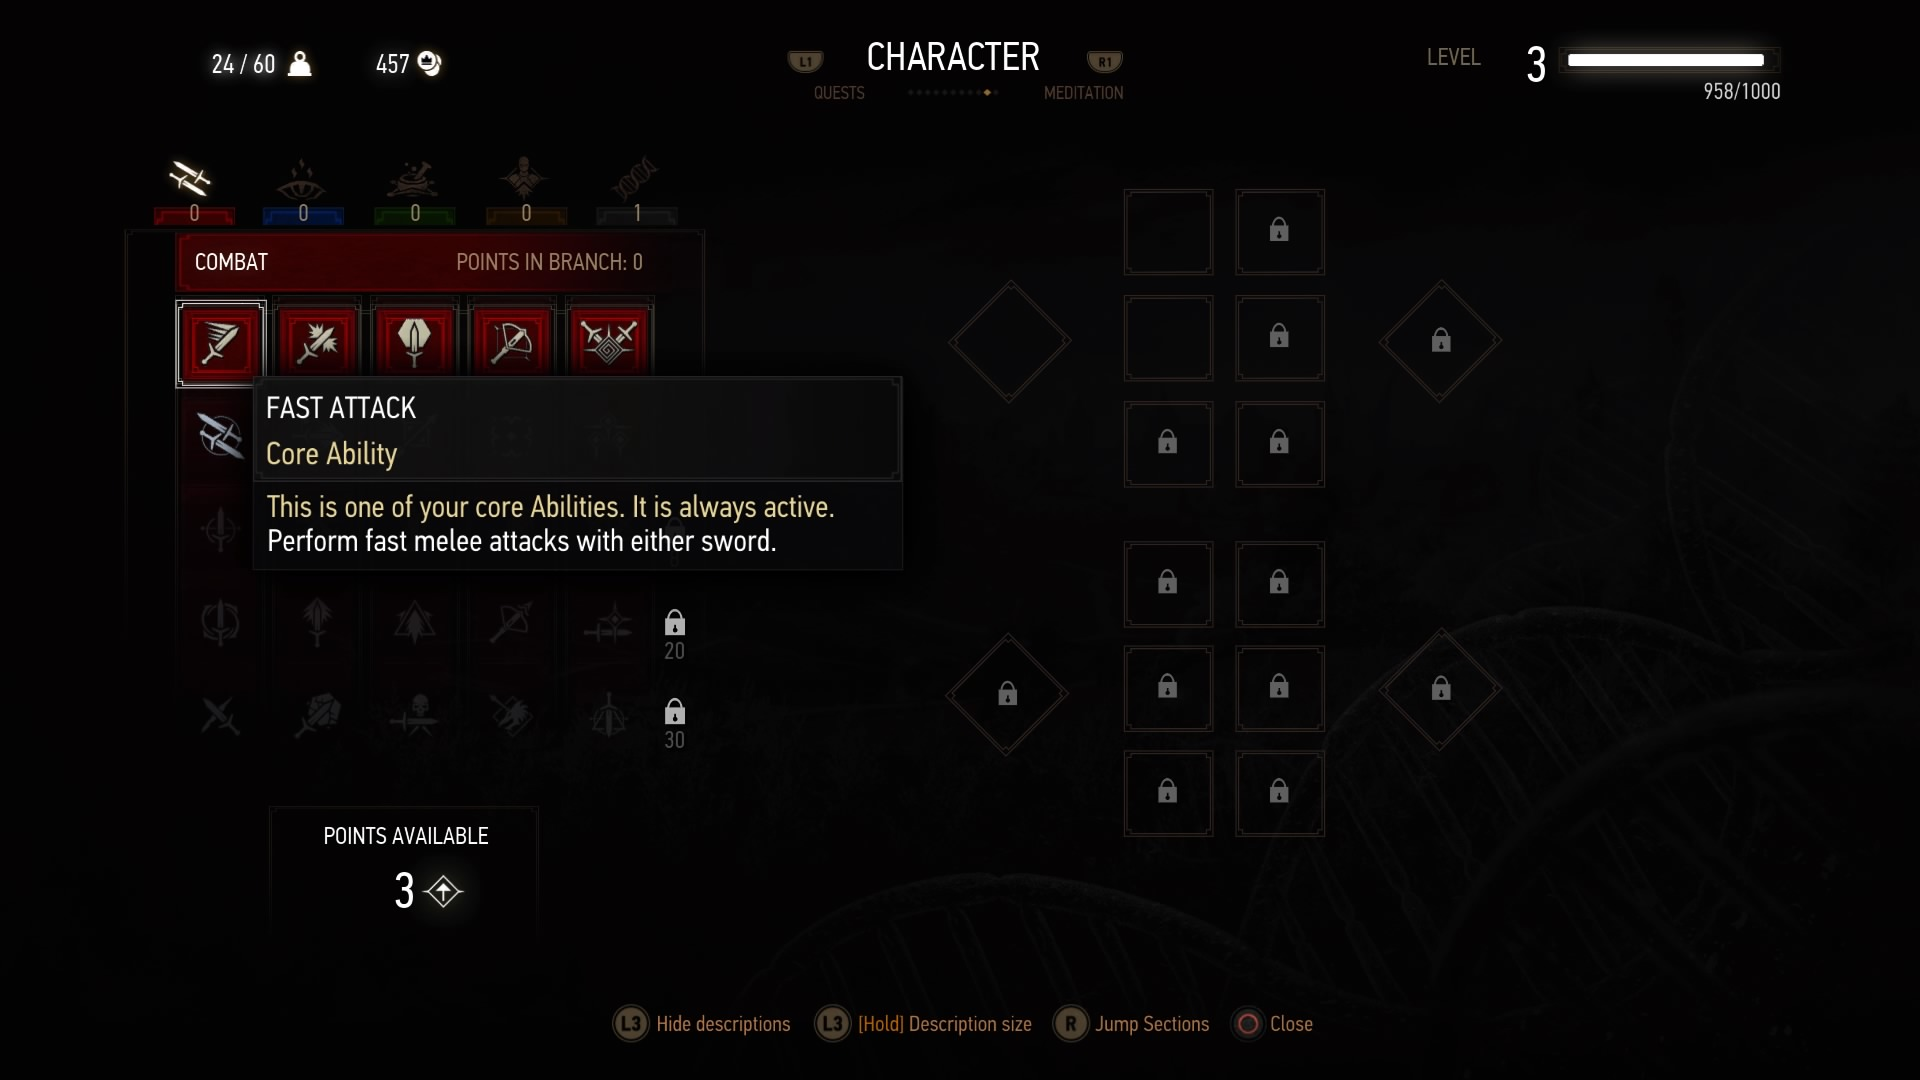 Bug, can't spend ability points | Forums - CD PROJEKT RED